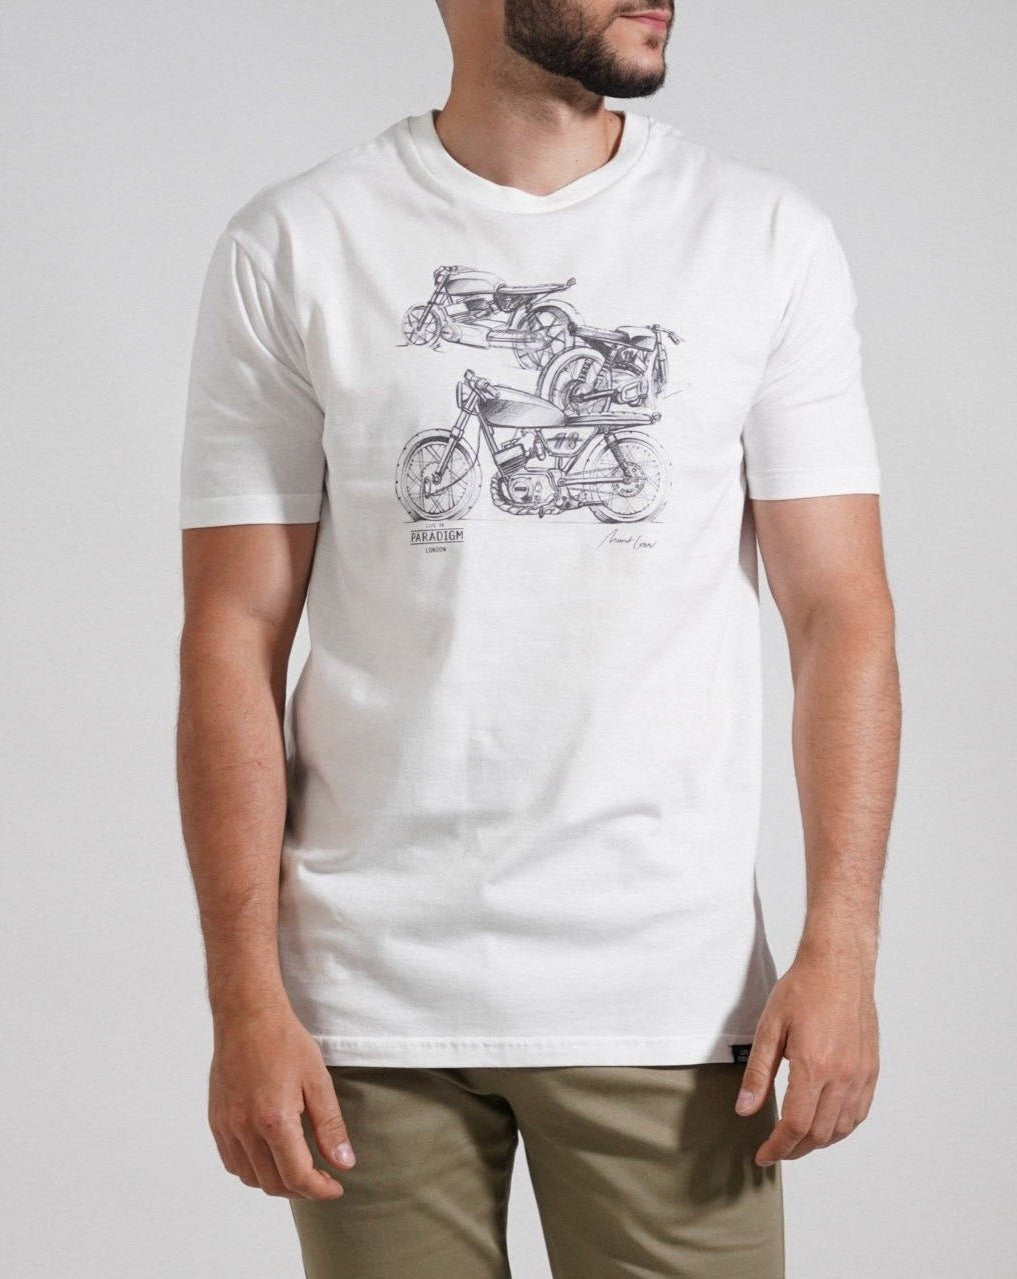 Motorbike Sketch T-Shirt - Life In Paradigm - Life in Paradigm Menswear London